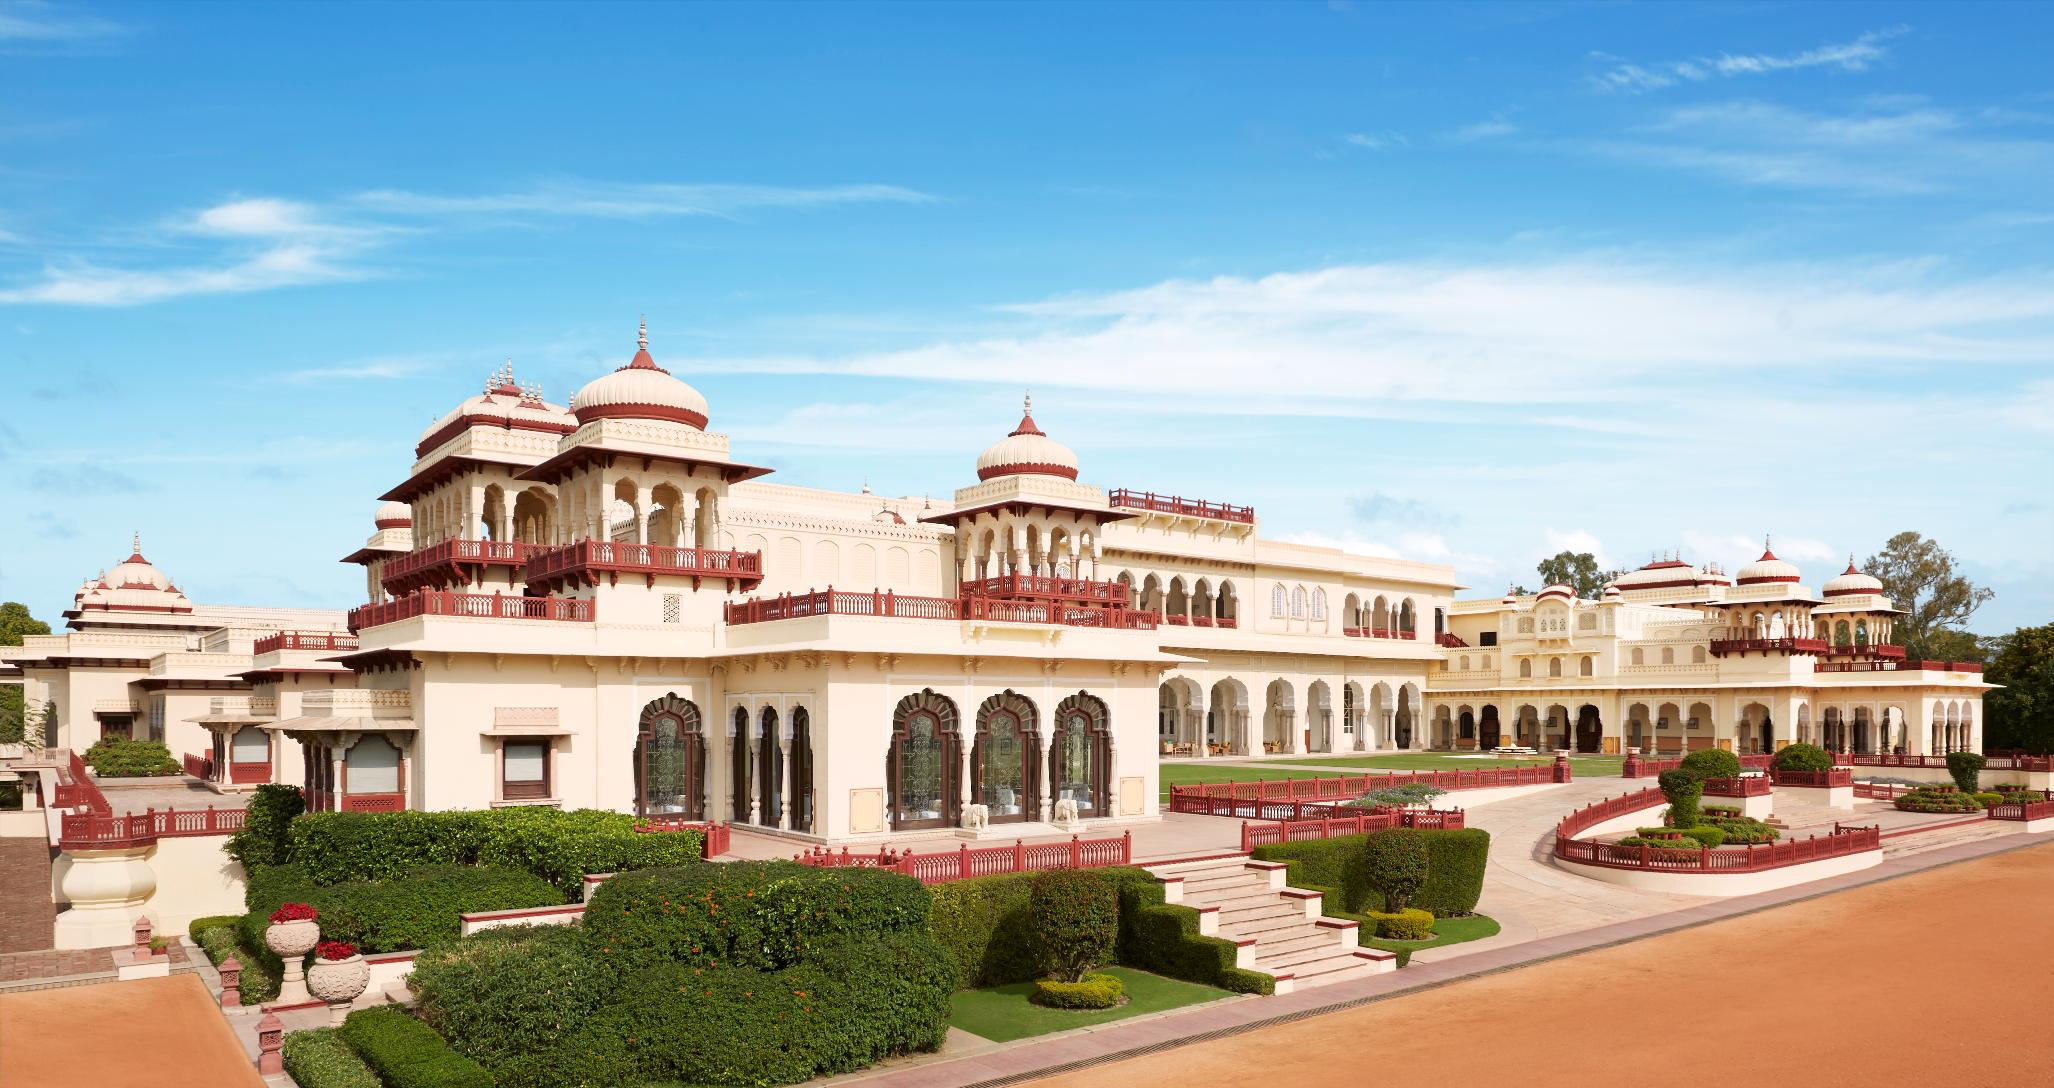 Jaipur's Rambagh Palace among the top 10 Heritage Hotels in the world